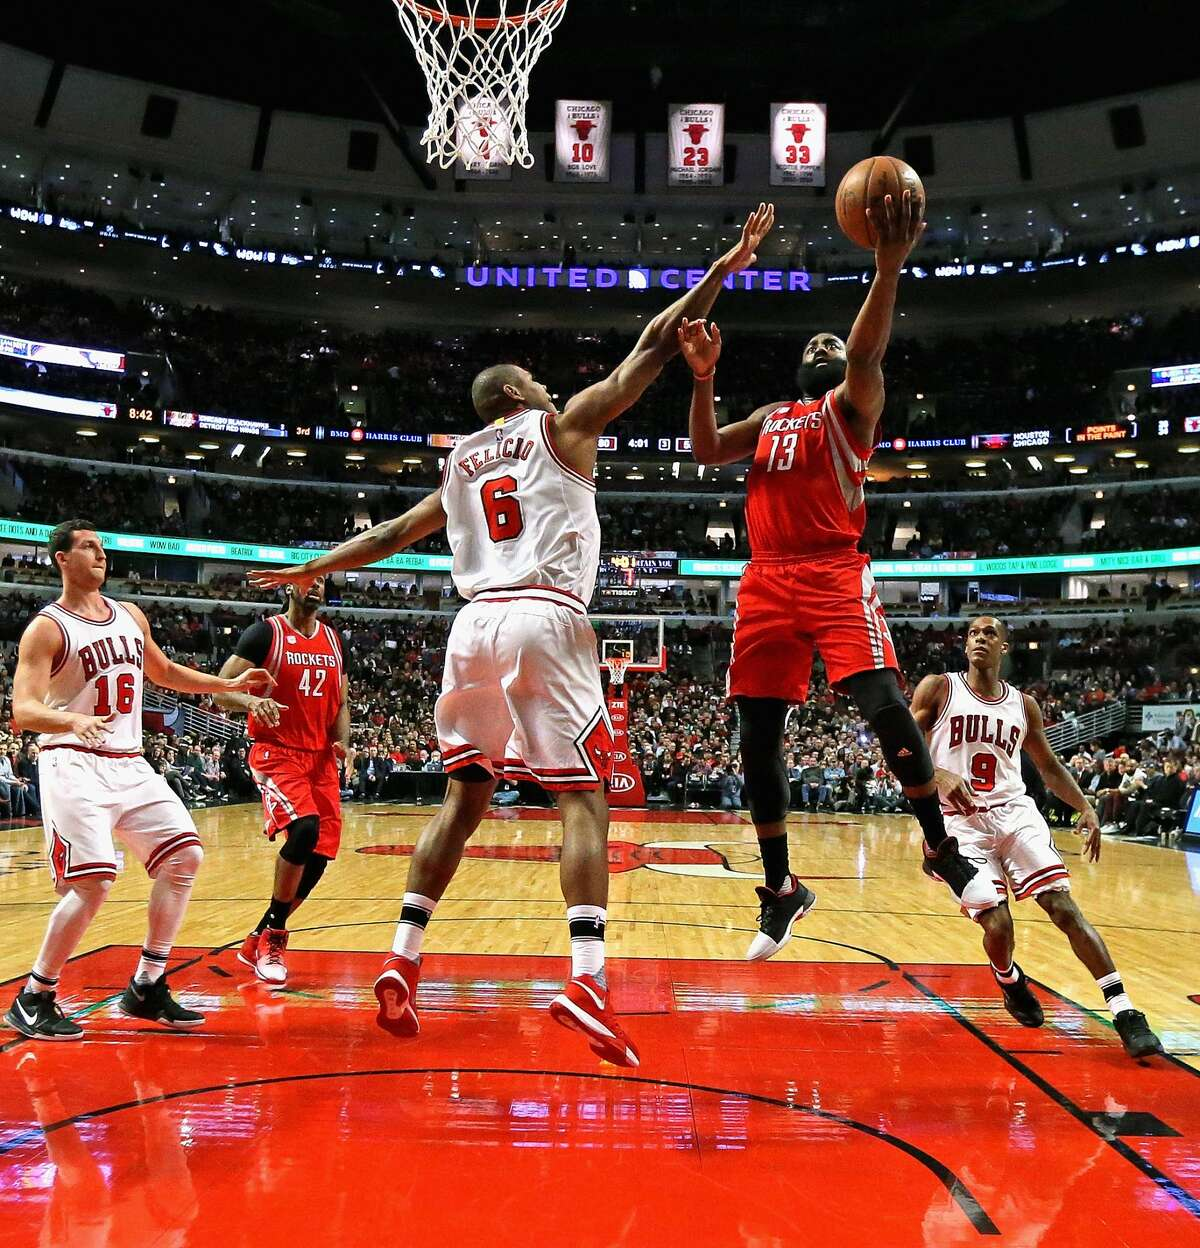 CHICAGO, IL - MARCH 10: James Harden #13 of the Houston Rockets puts up a shot over Cristiano Felicio #6 of the Chicago Bulls at the United Center on March 10, 2017 in Chicago, Illinois. The Rockets defeated the Bulls 115-94. NOTE TO USER: User expressly acknowledges and agrees that, by downloading and/or using this photograph, user is consenting to the terms and conditions of the Getty Images License Agreement. (Photo by Jonathan Daniel/Getty Images)